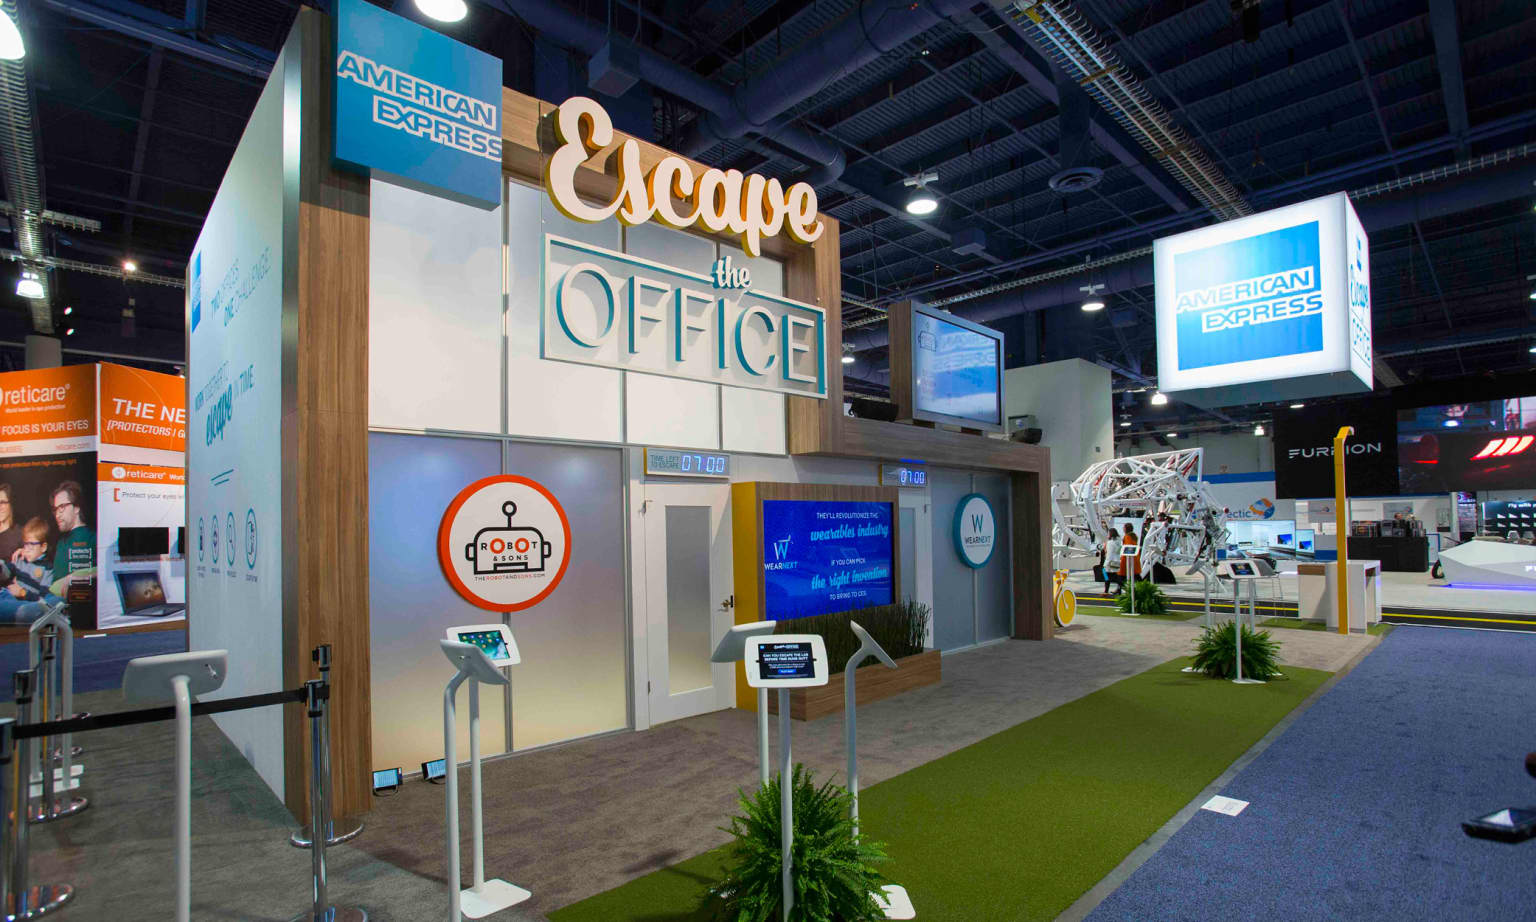 Escape the Office (American Express)